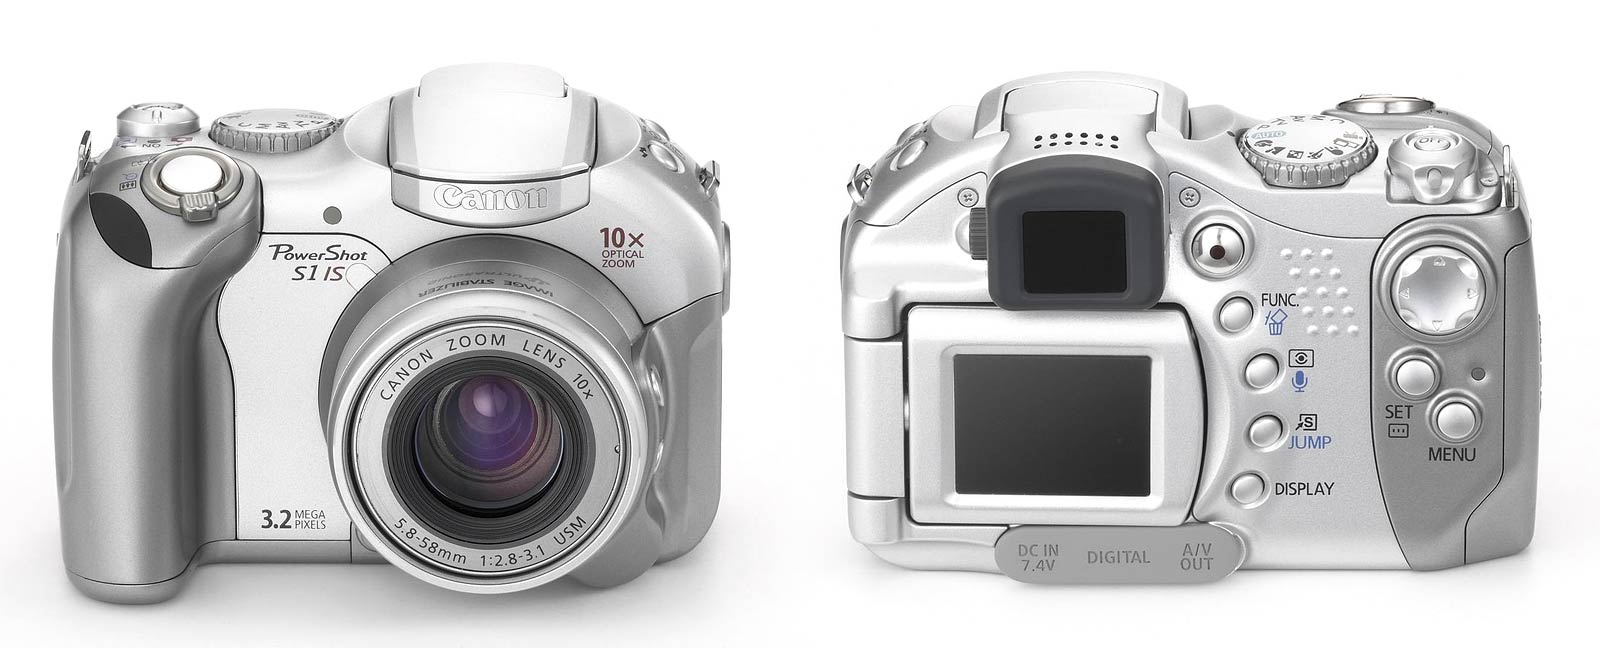 canon powershot s1 is plus hands on digital photography review rh dpreview com Canon ES Canon BJC 1000